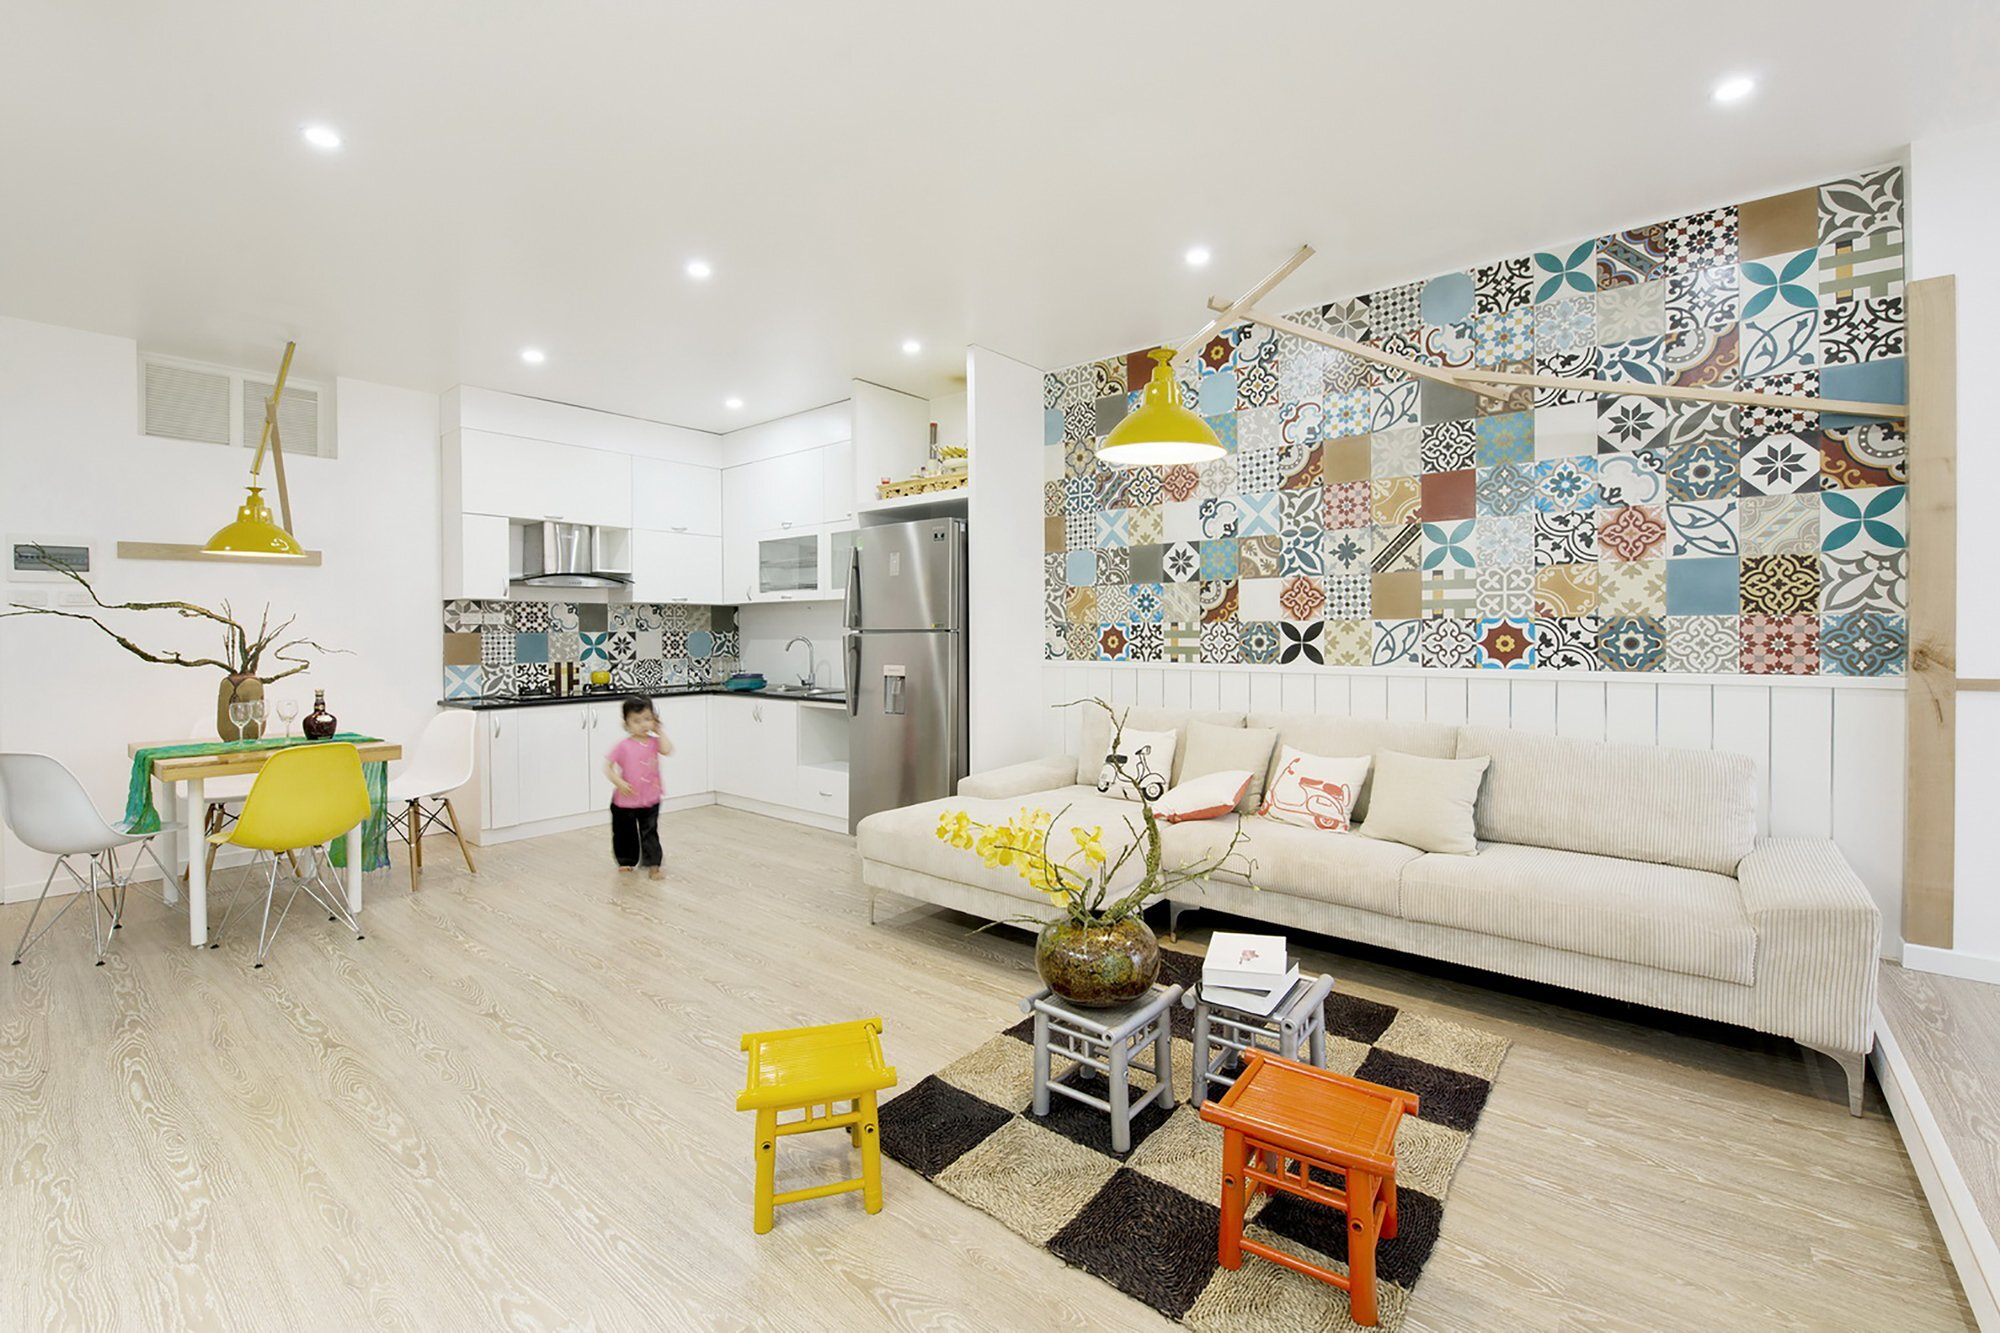 Ht Apartment In Hanoi A Small Space For Five